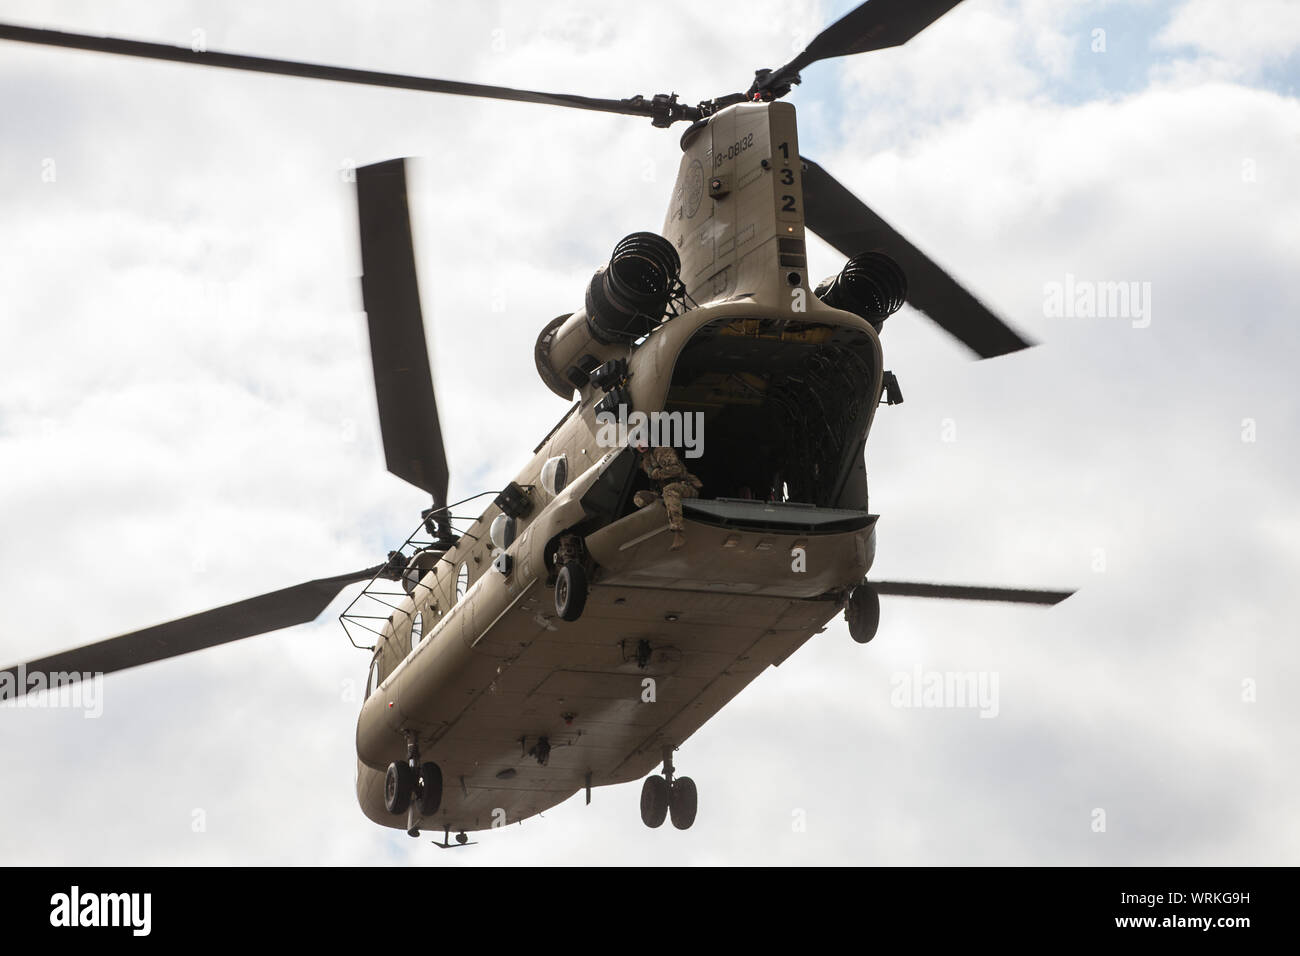 London, UK. 7 September, 2019. A military helicopter lands outside ExCel London during the sixth day of Stop The Arms Fair protests against DSEI, the Stock Photo